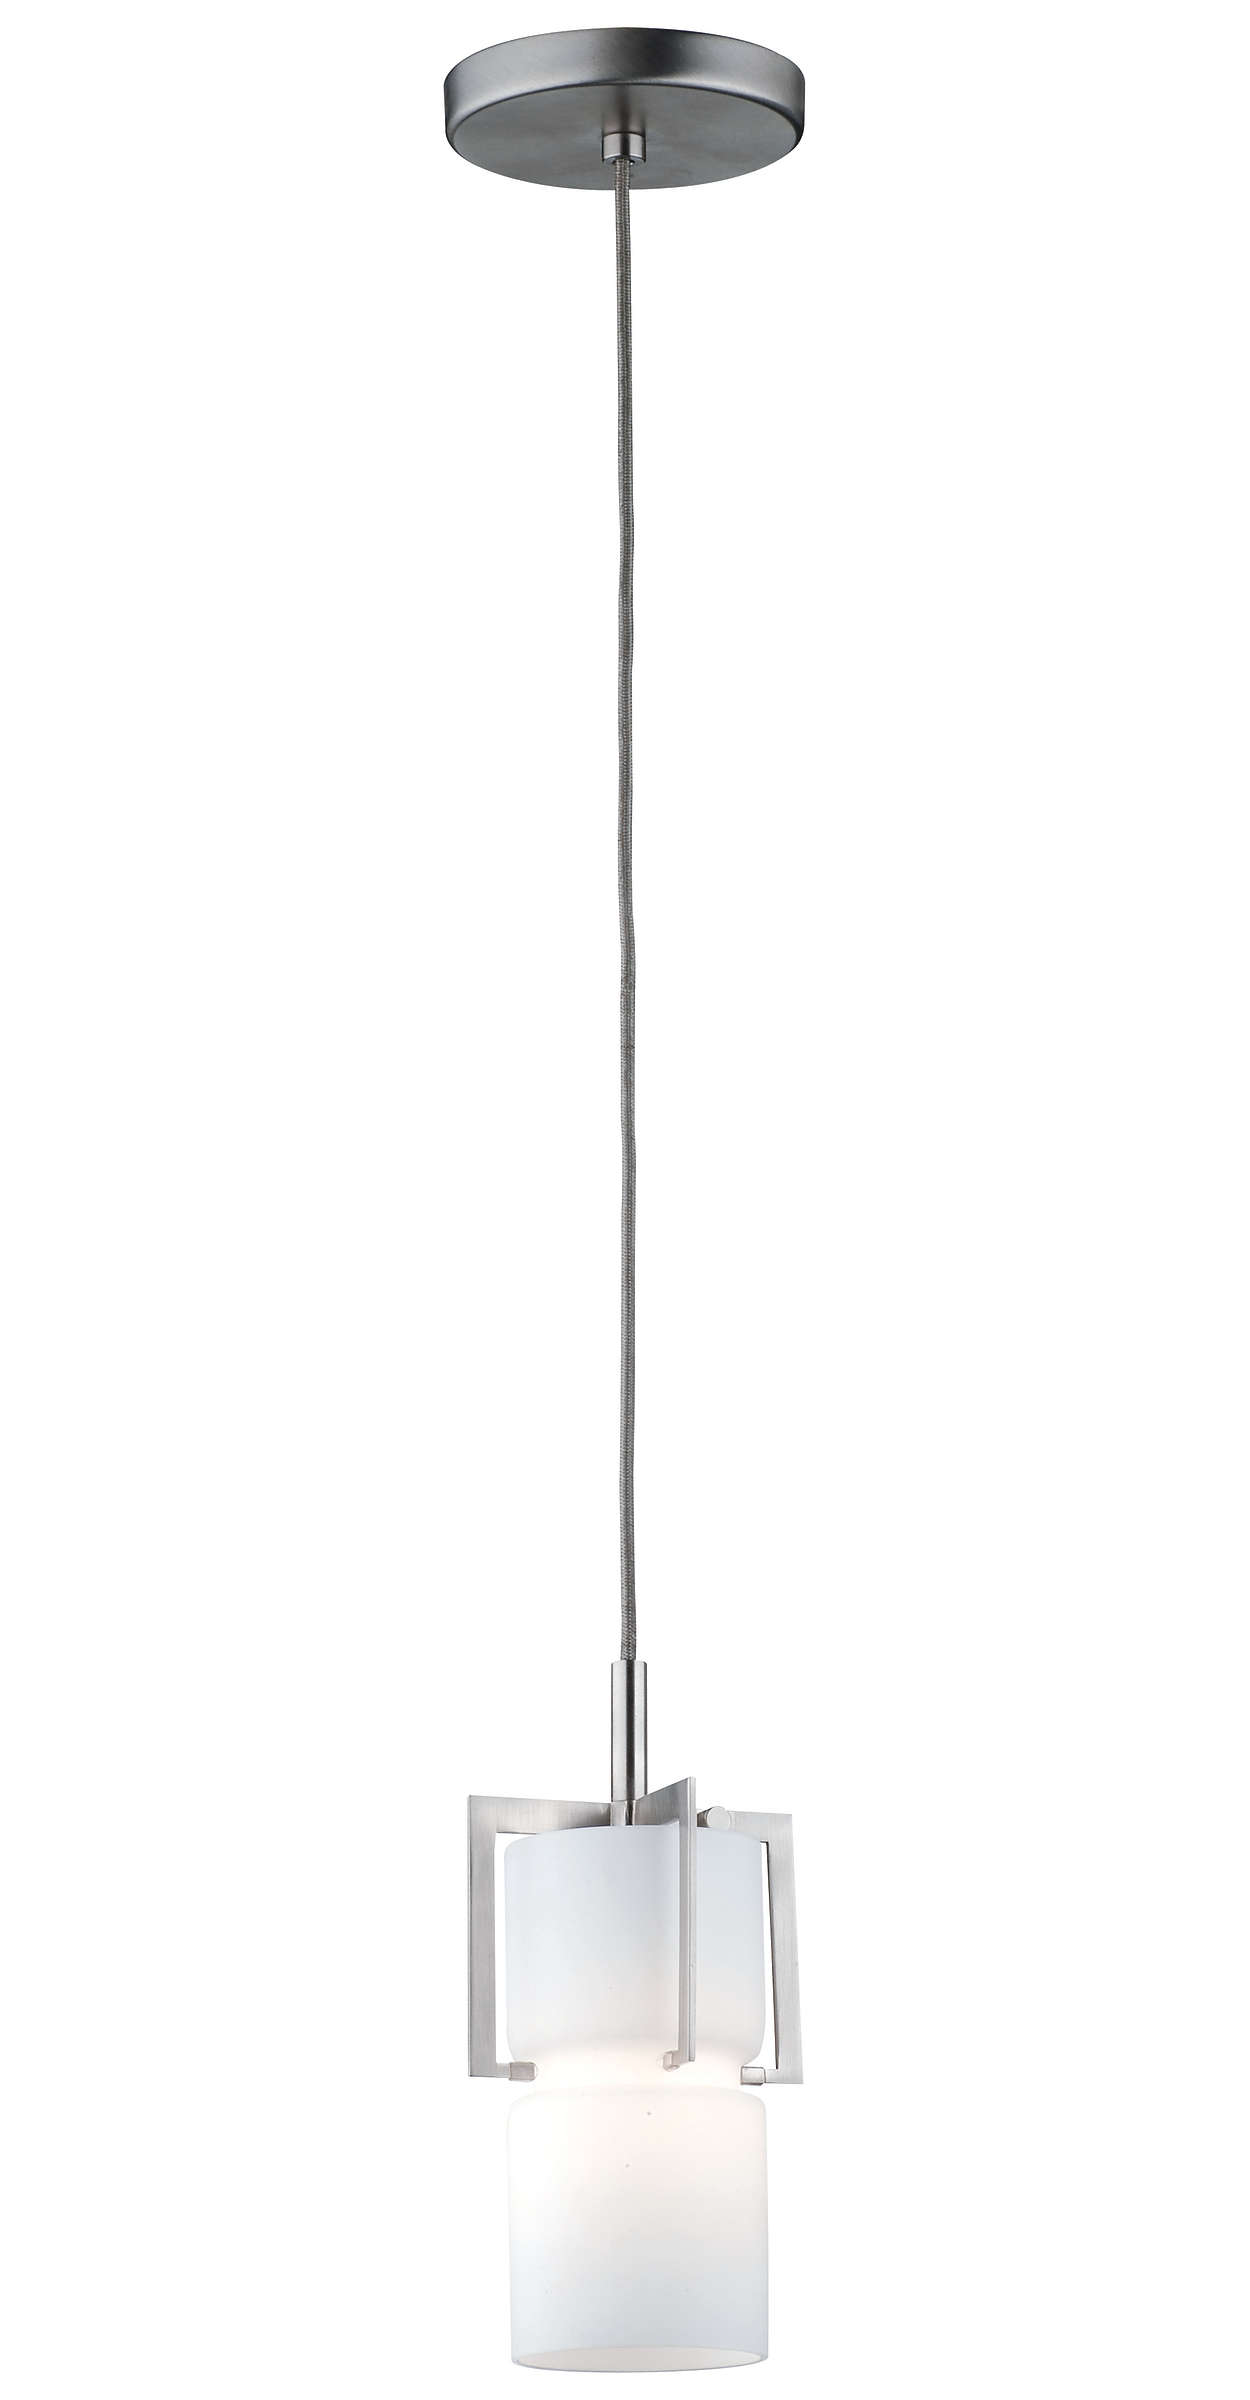 Weston 1-light Pendant in Satin Nickel finish